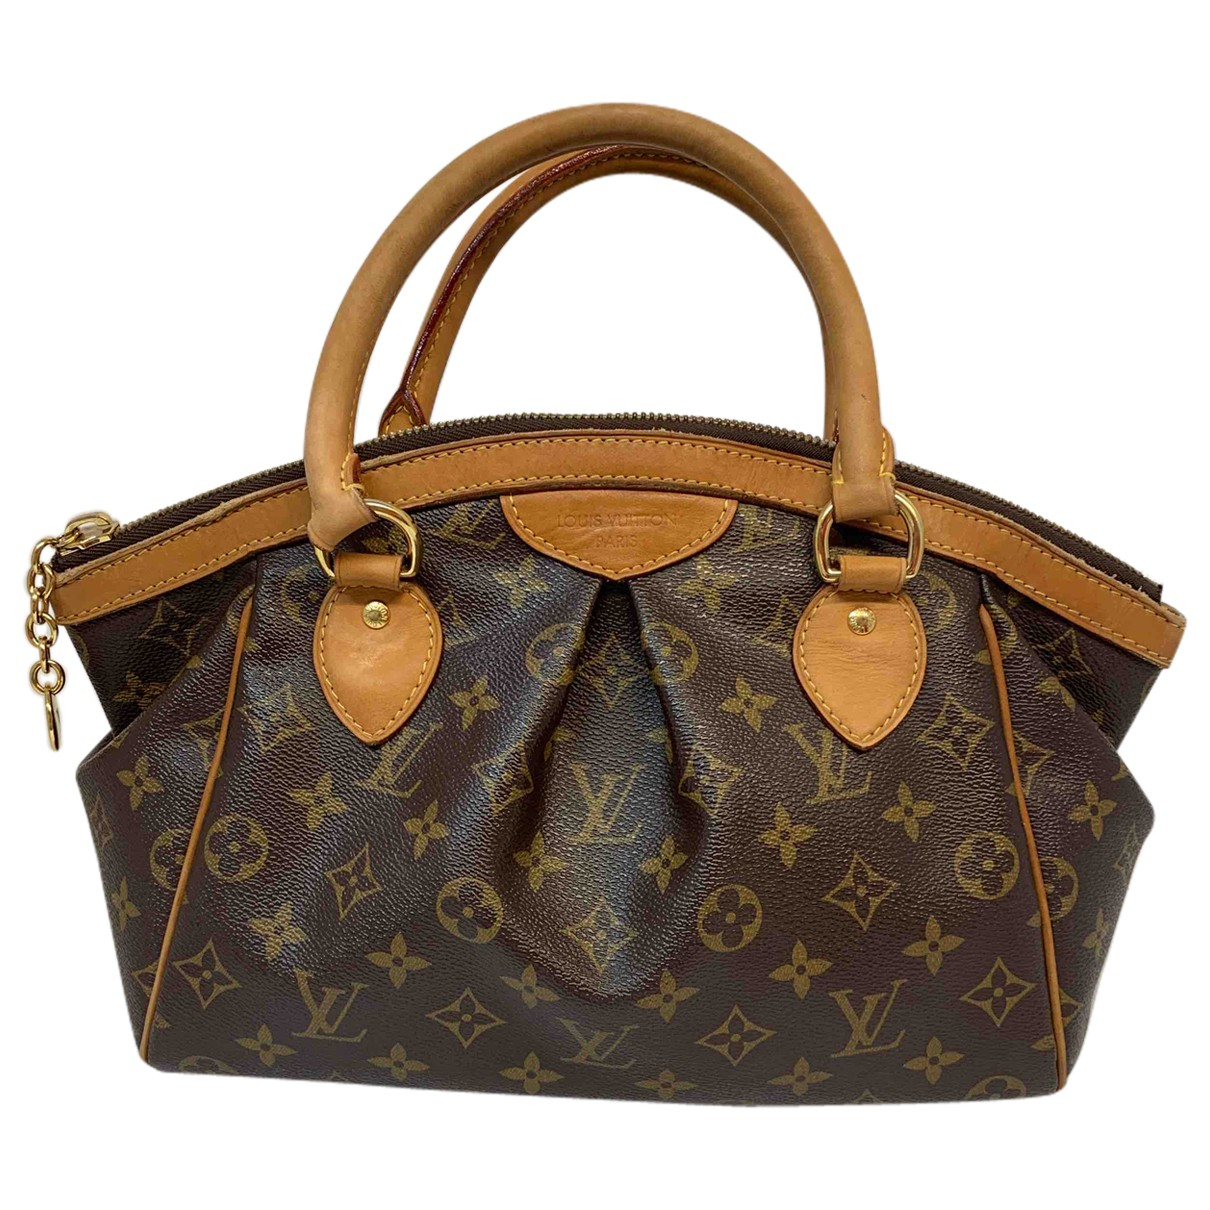 Louis Vuitton Tivoli Brown Cloth handbag for Women N